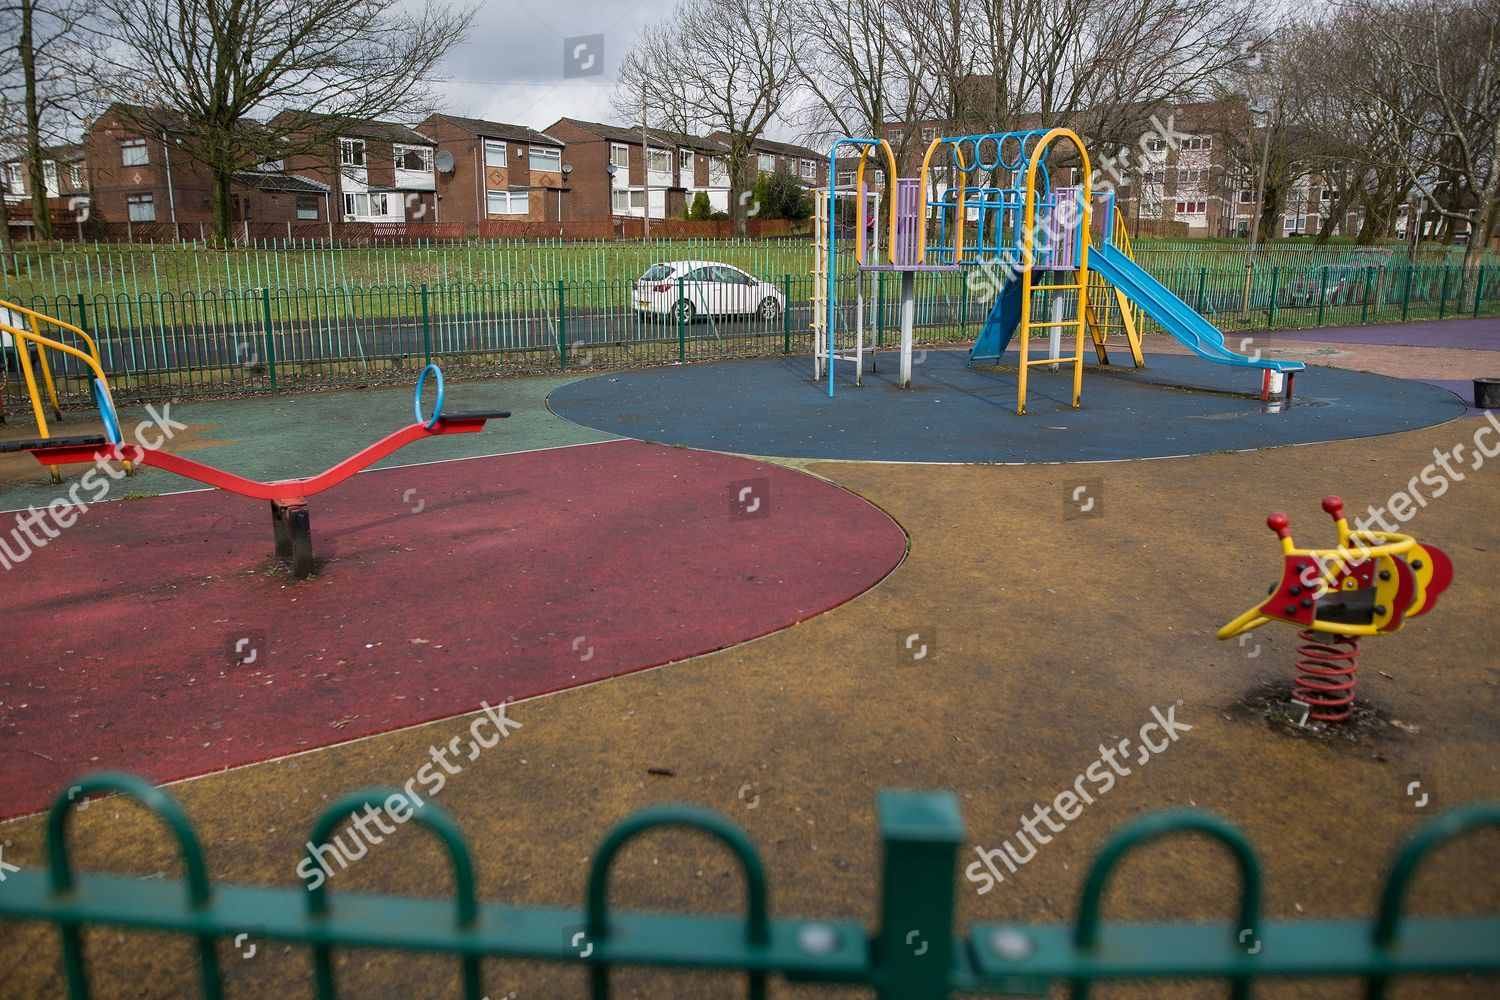 In Britains Playgrounds Bringing In >> Scene Thomasson Park Playground Halliwell Area Bolton Editorial